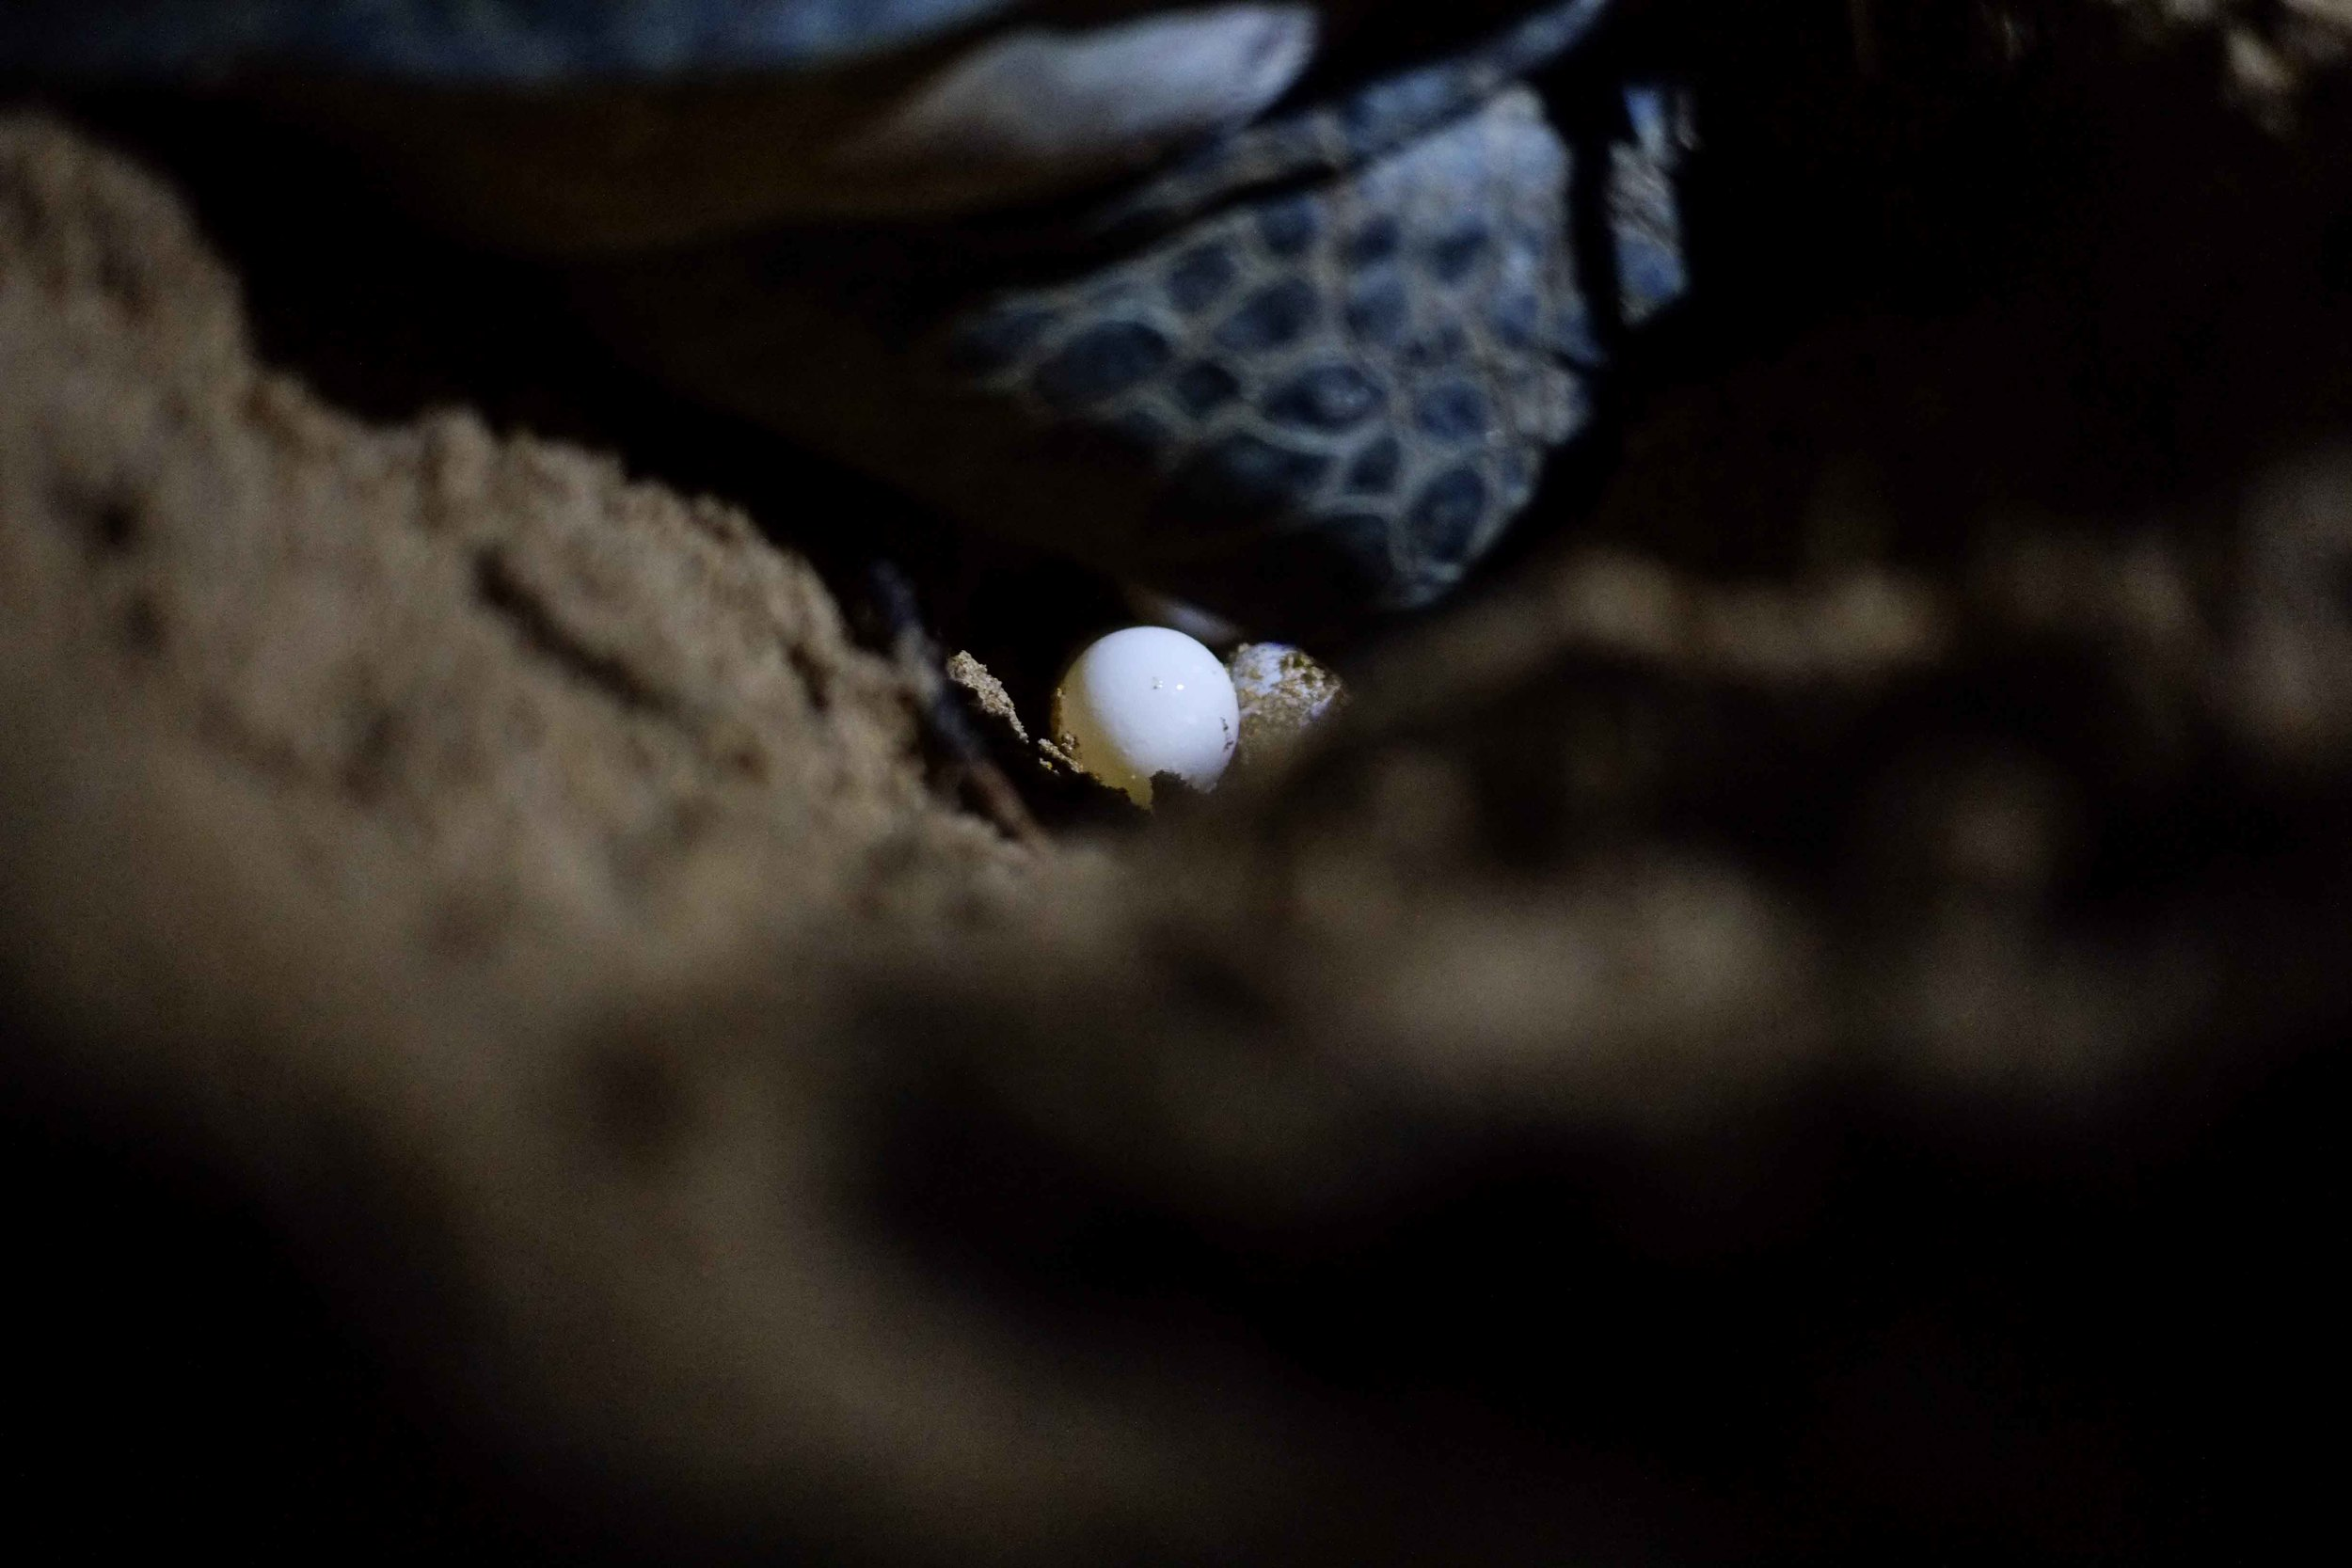 The turtles will lay their eggs, often 6 or 7 at a time, and then bury them and swim back into the water.